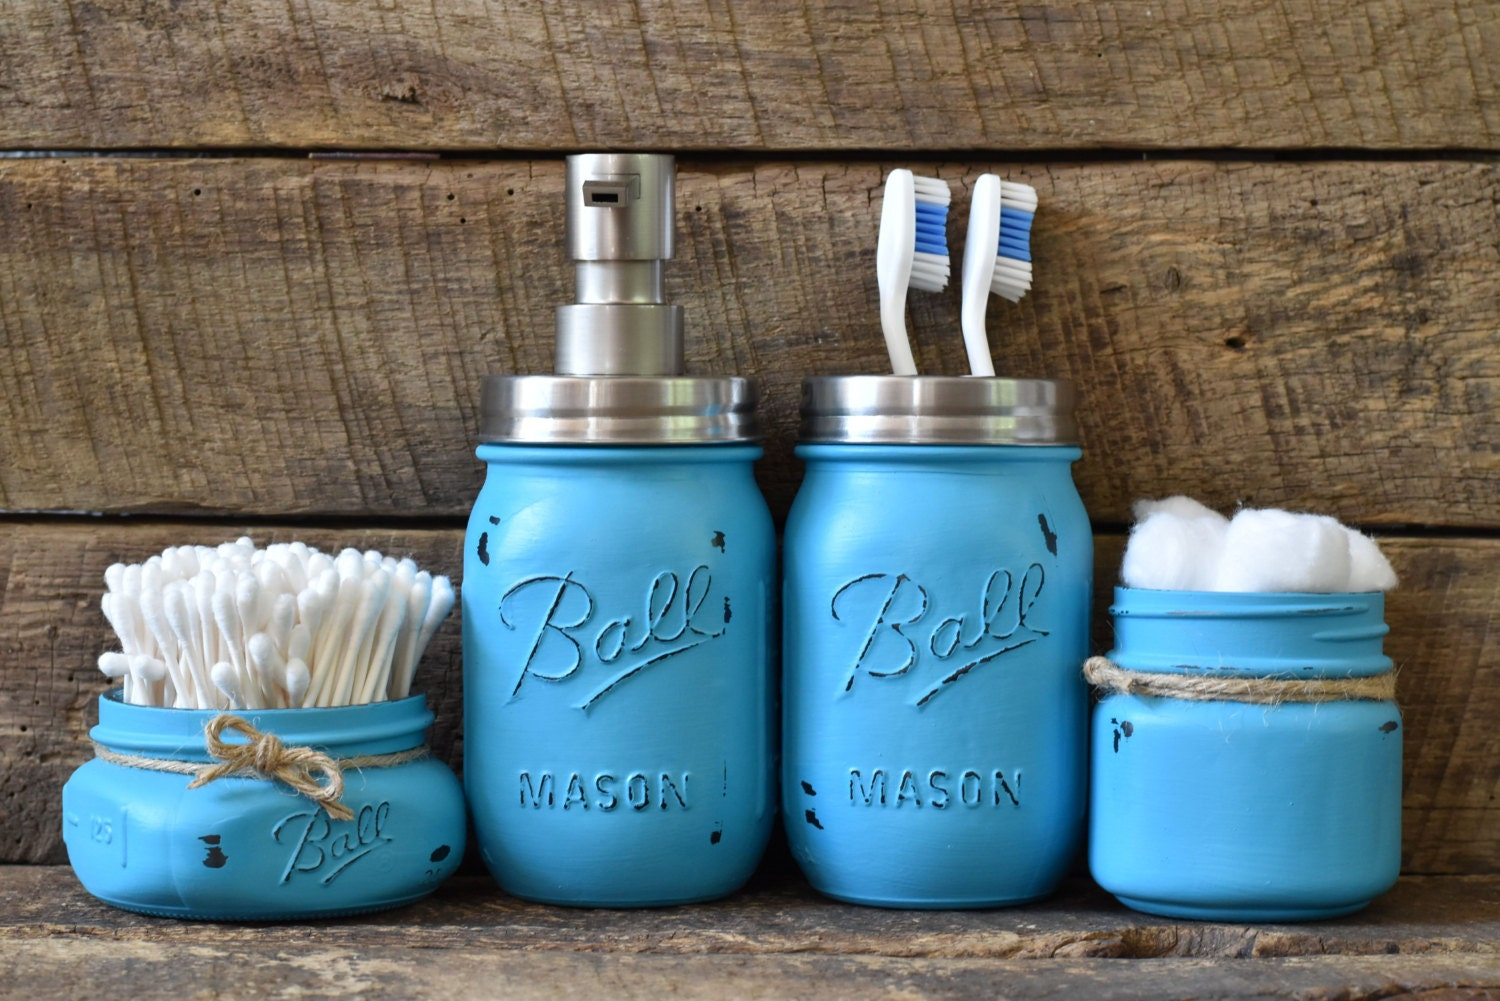 Mason Jar Bathroom Accessories Black Mason Jar Bathroom Set Mason Jar Bathroom Set Black